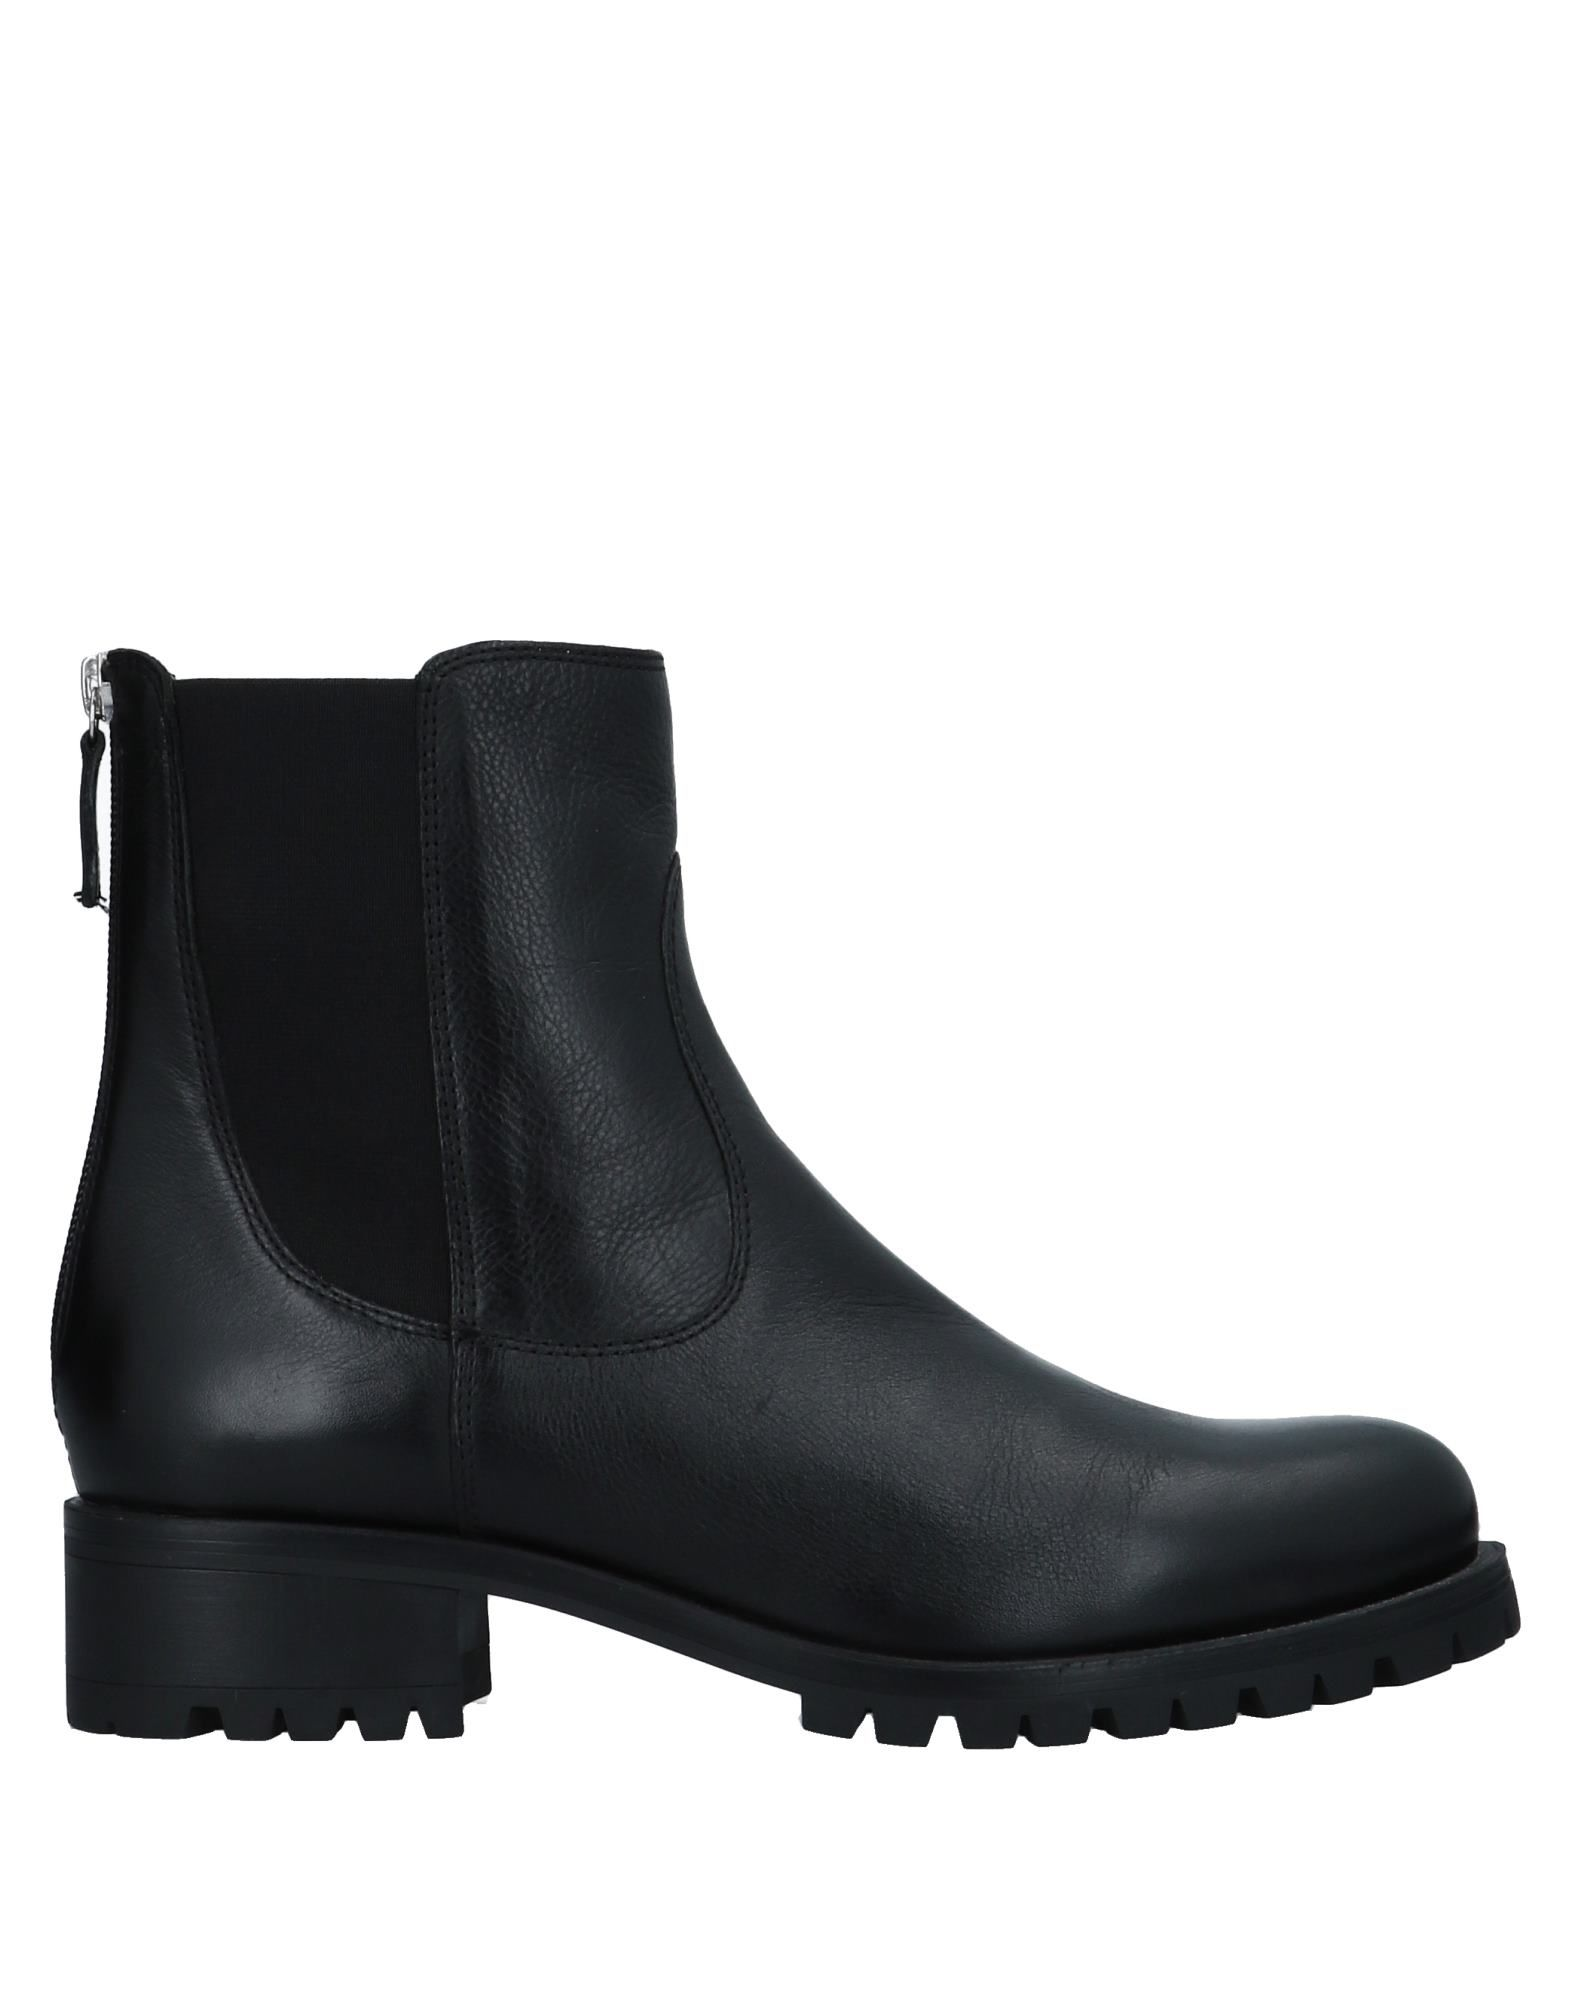 Chelsea Boots Unisa Donna - 11537555MS